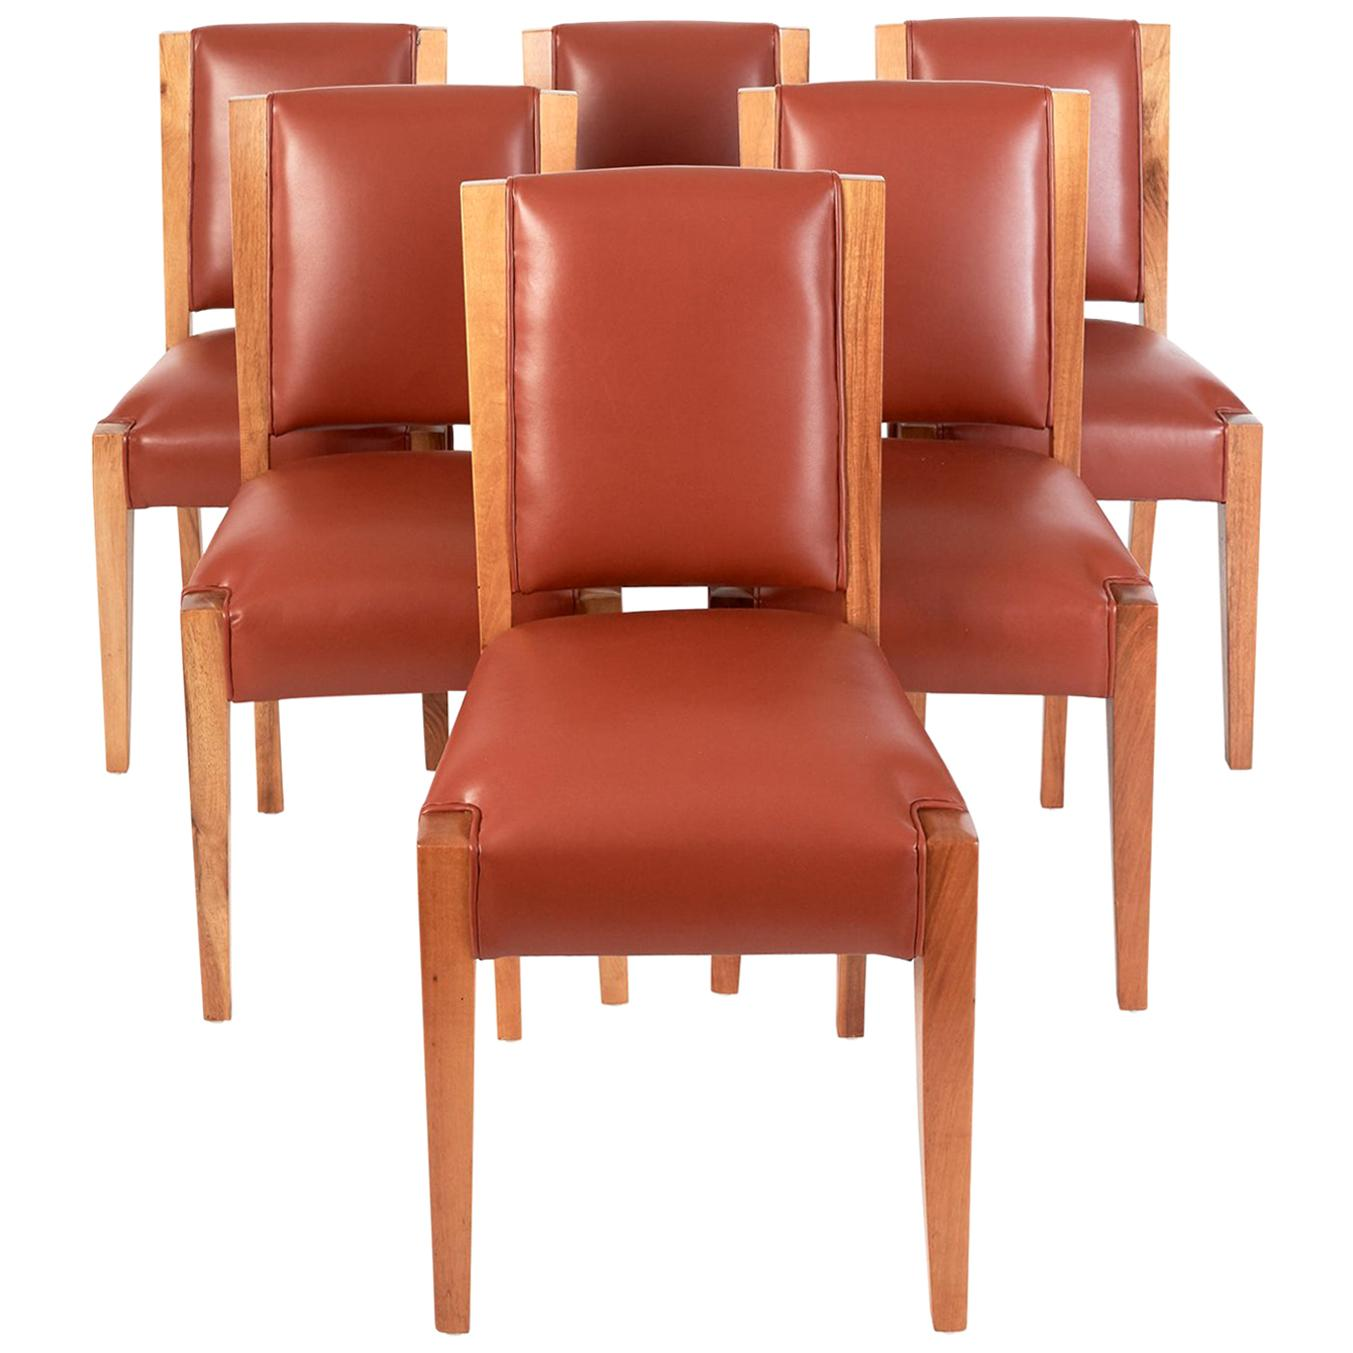 André Sornay: Important Set of Six Walnut & Leather Dining Chairs, France 1930s